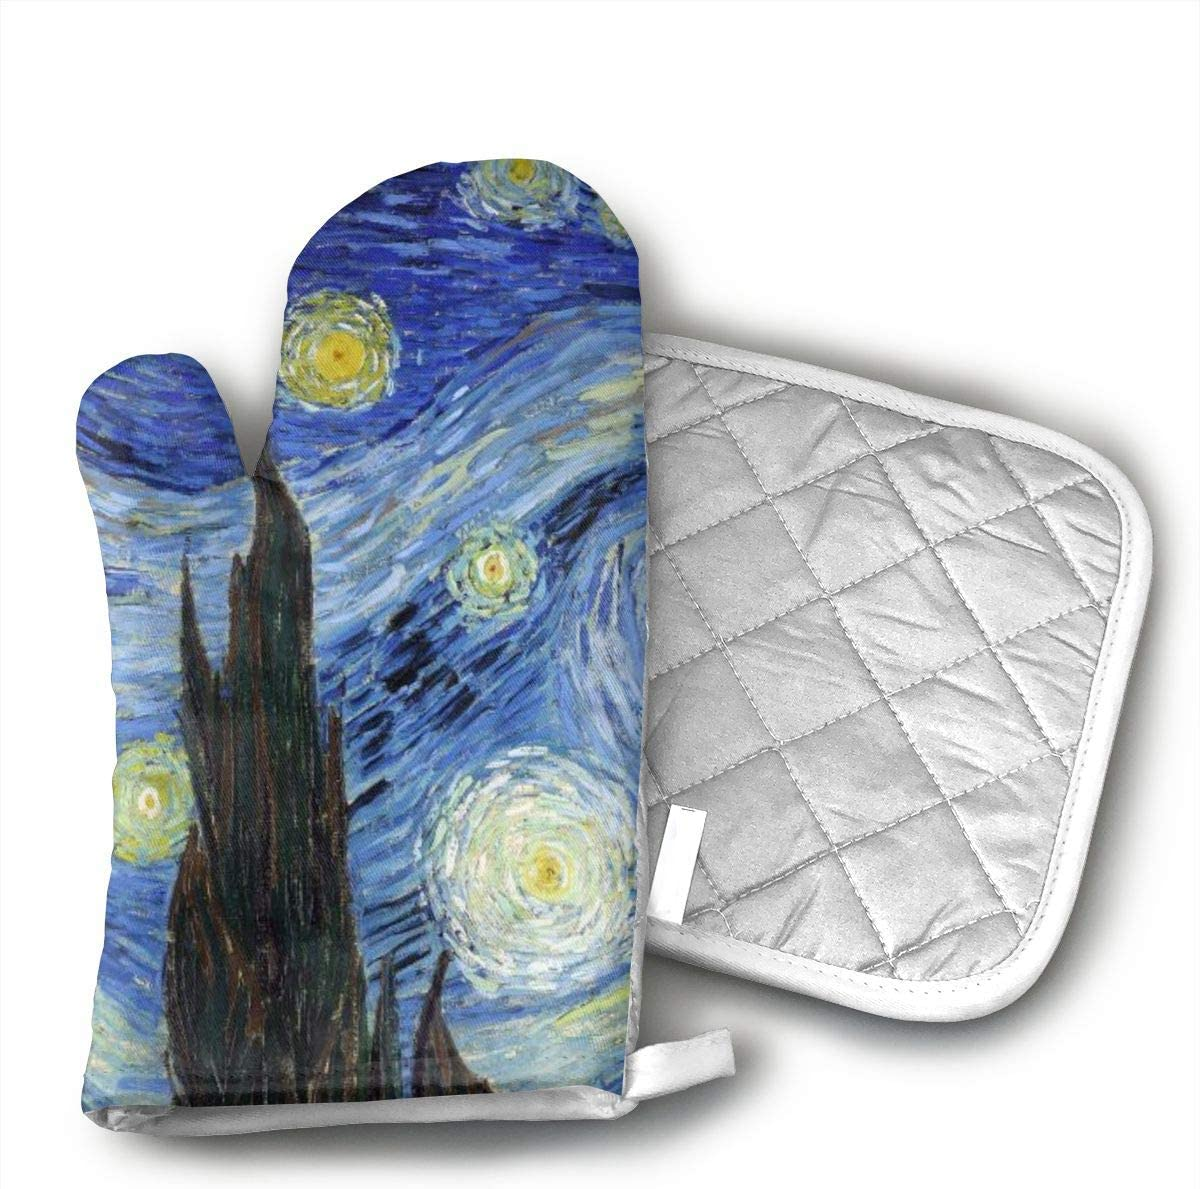 Van Gogh Starry Night Oven Mitts & Heat Resistant Pot Holder - with Polyester Cotton Non-Slip Grip, Best Used As Baking, Grilling, BBQ, Cooking, Kitchen Or Oven Gloves